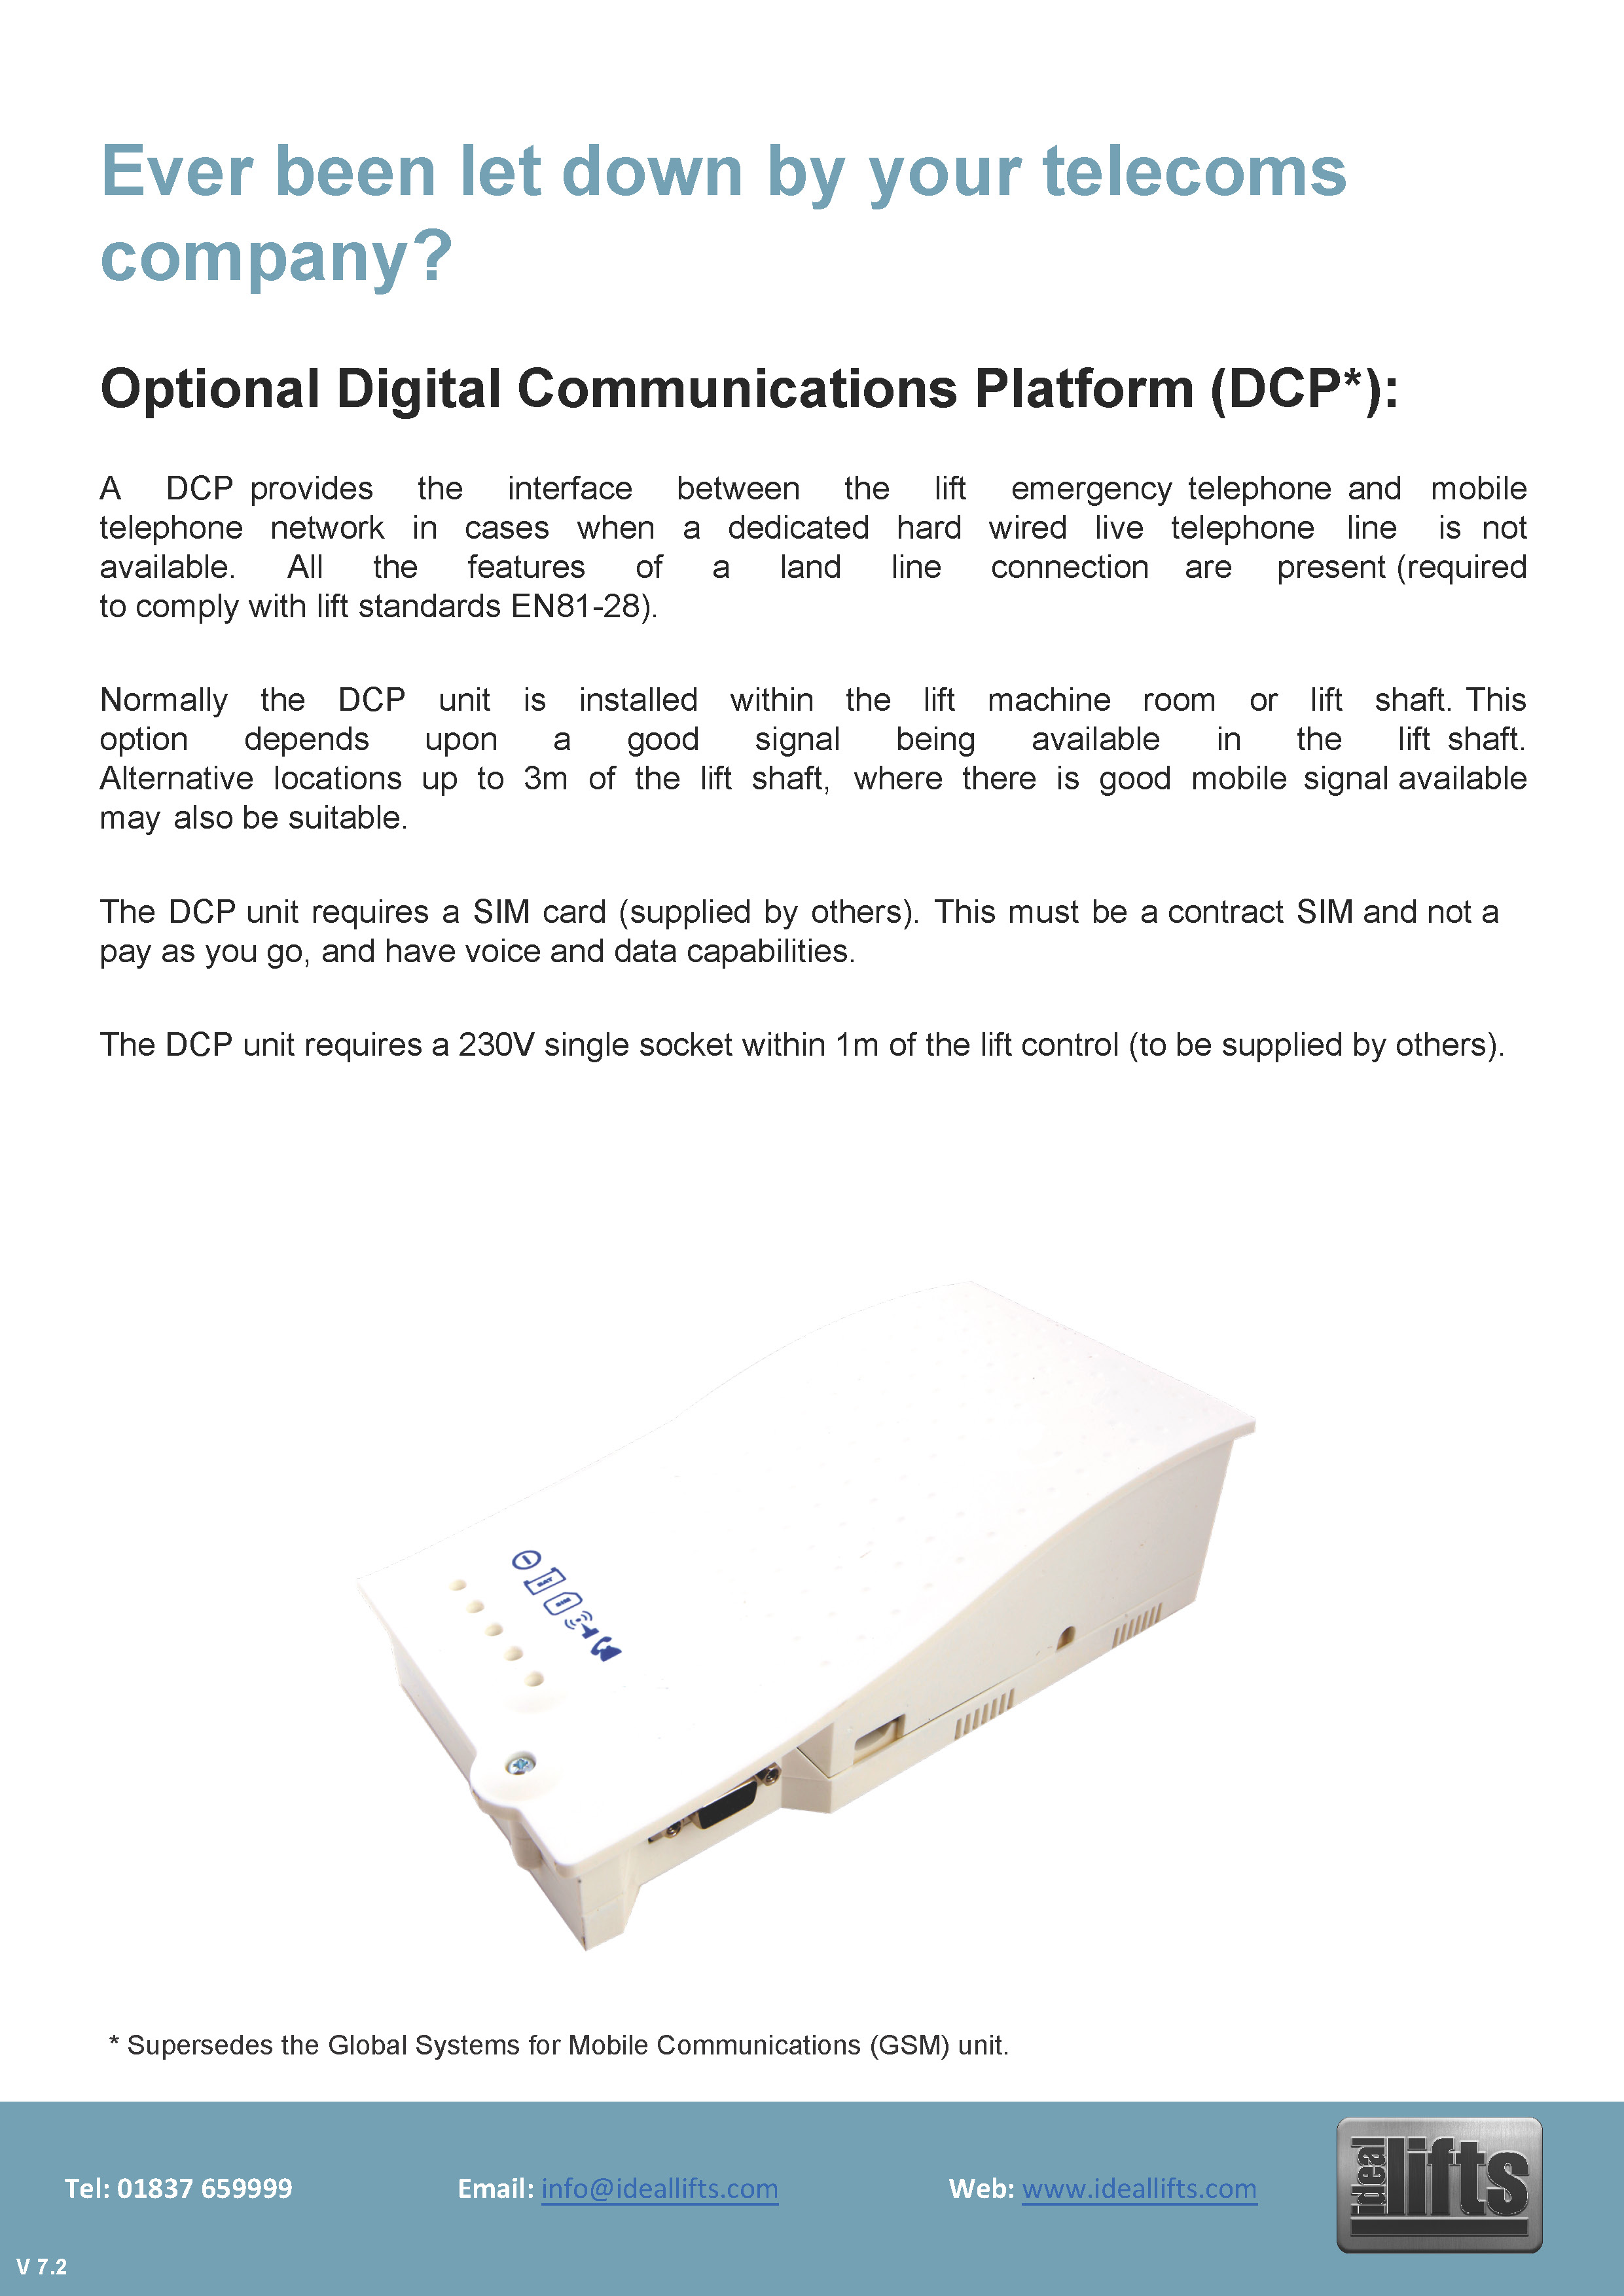 Digital Communications Platform (DCP) GSM